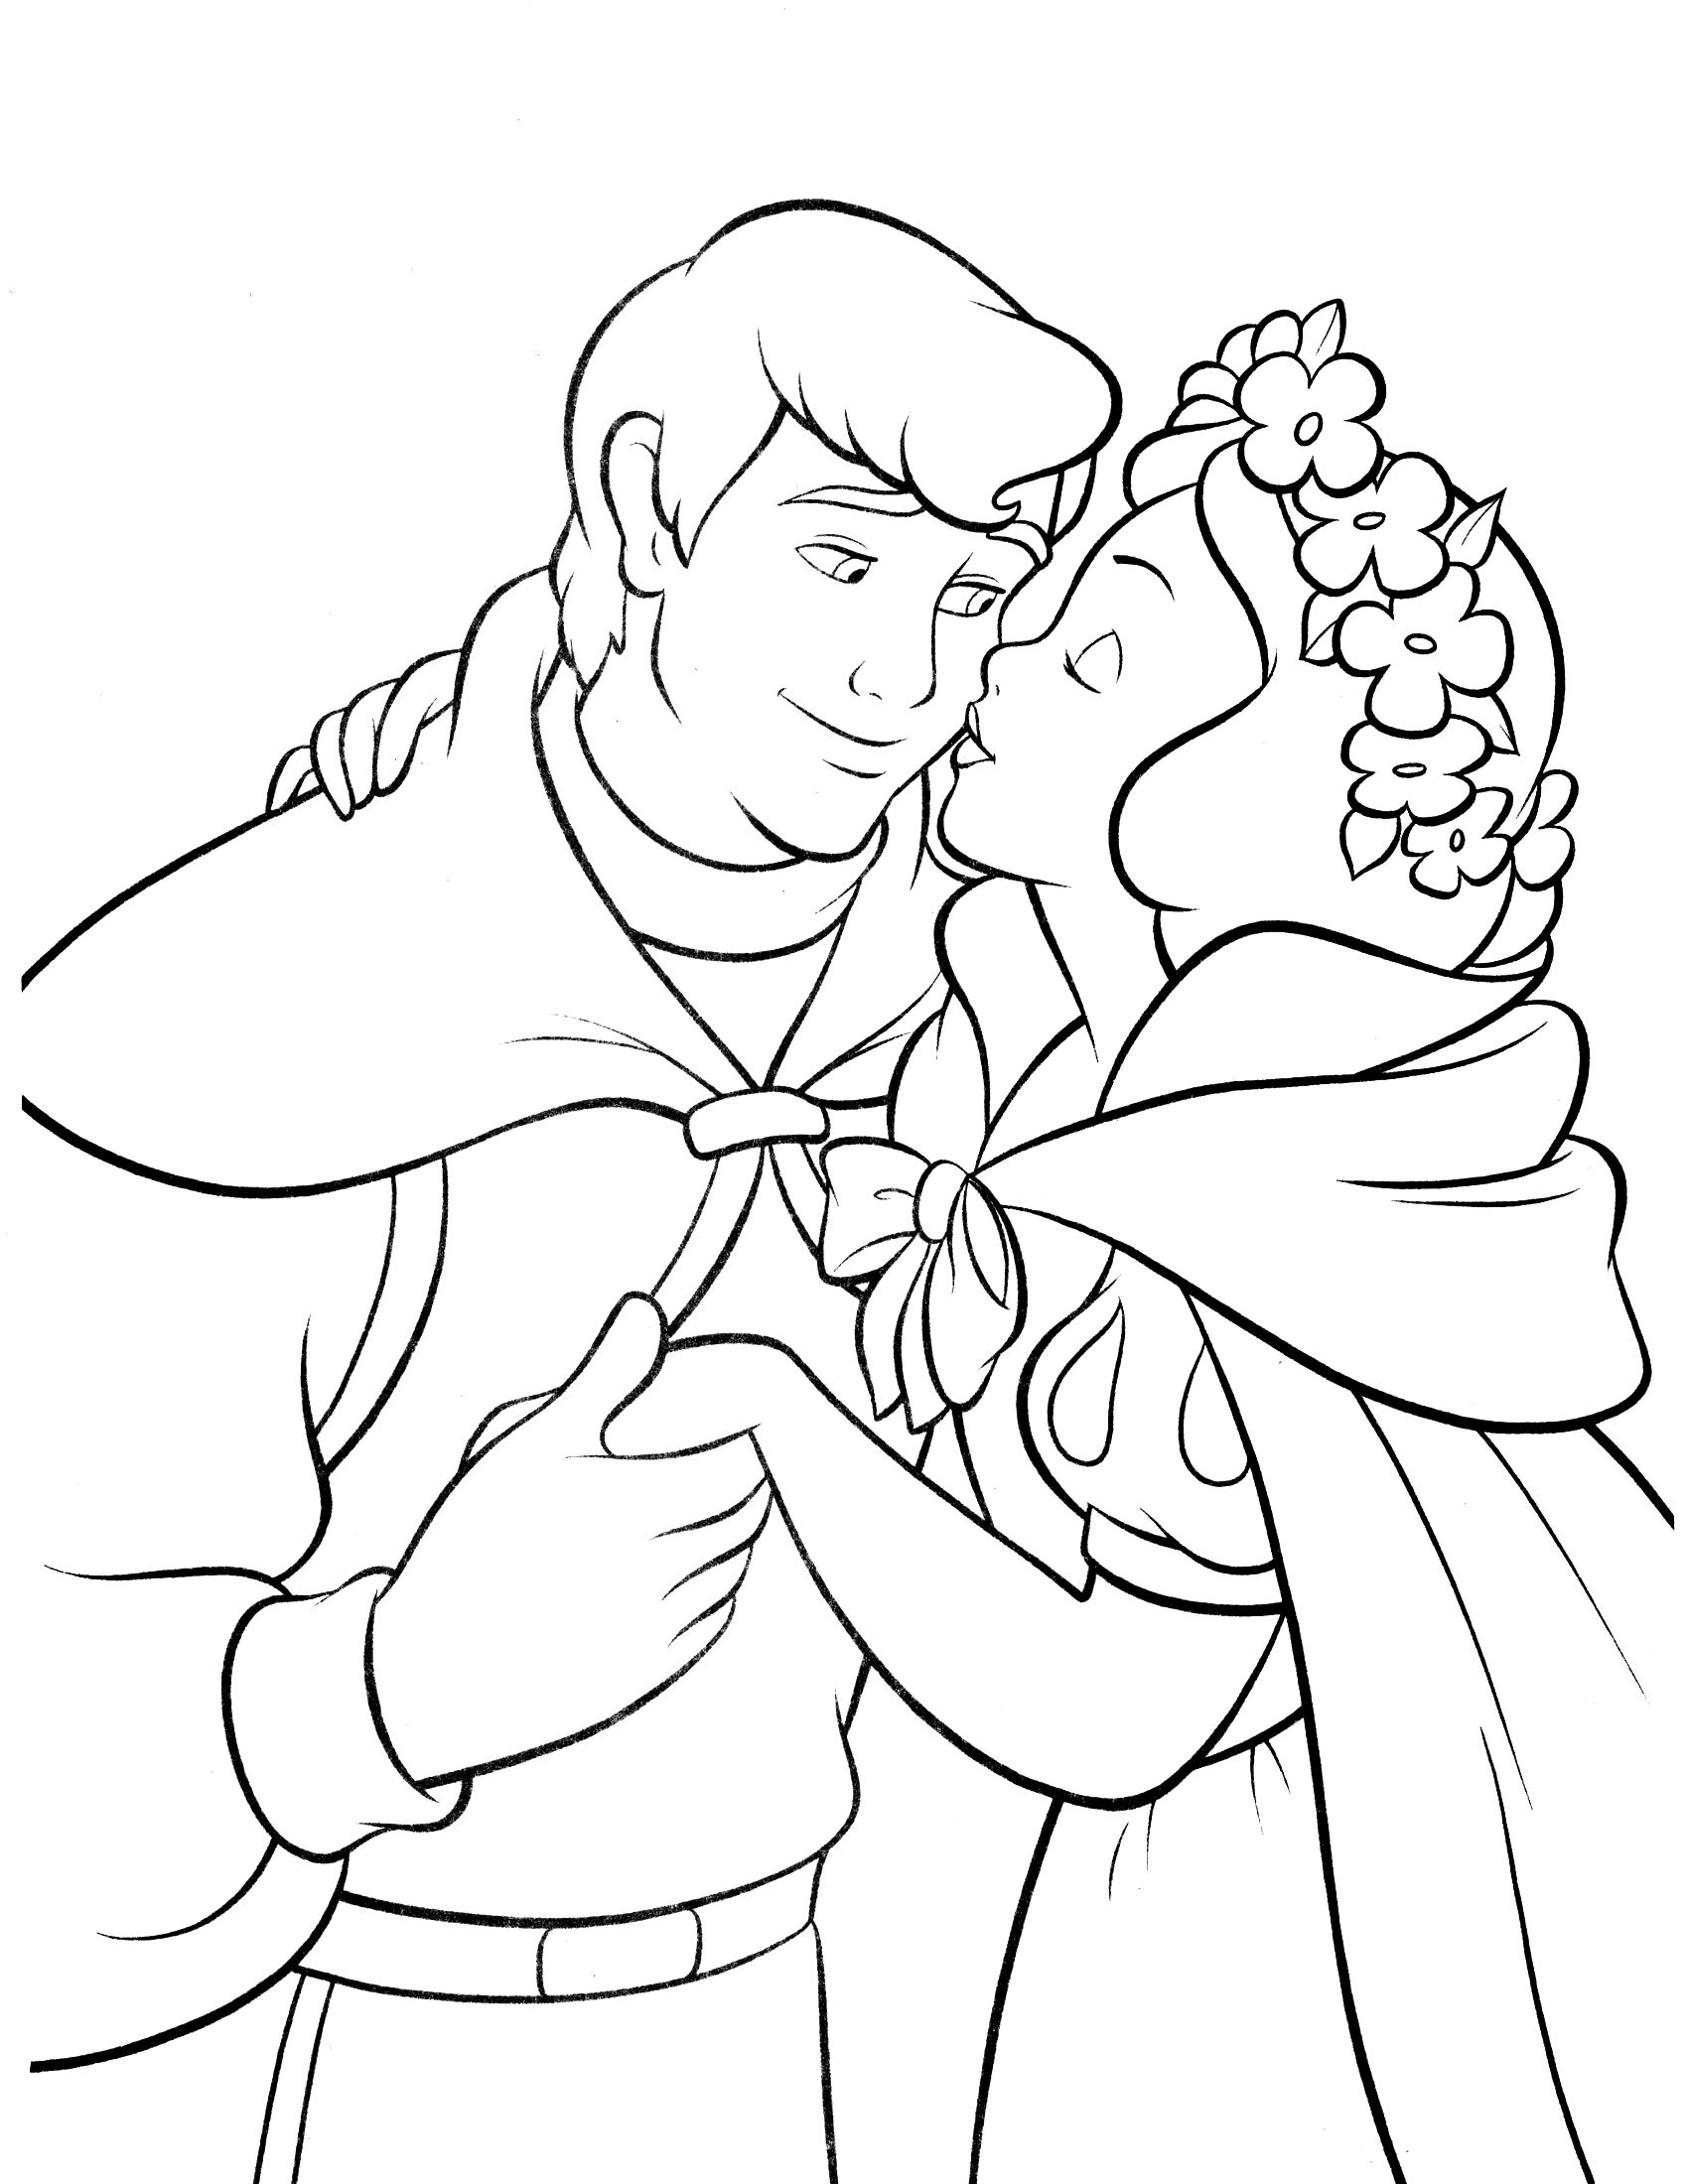 Snow White Coloring Page Disney Coloring Pages Pinterest Snow